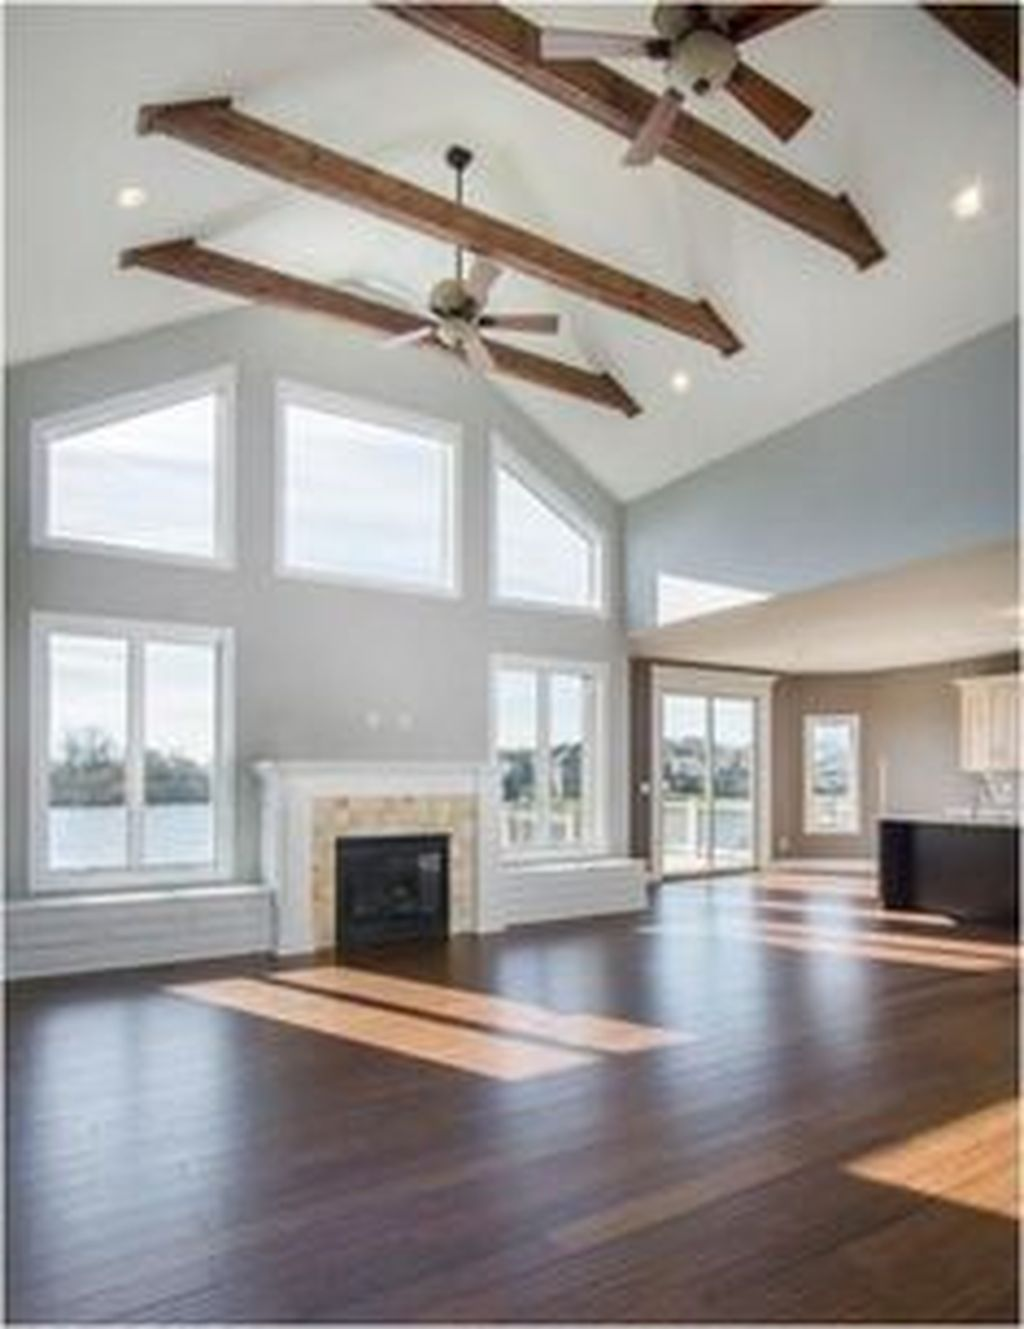 Inspiring Drywall Design Ideas To Beautify Your Interior 21